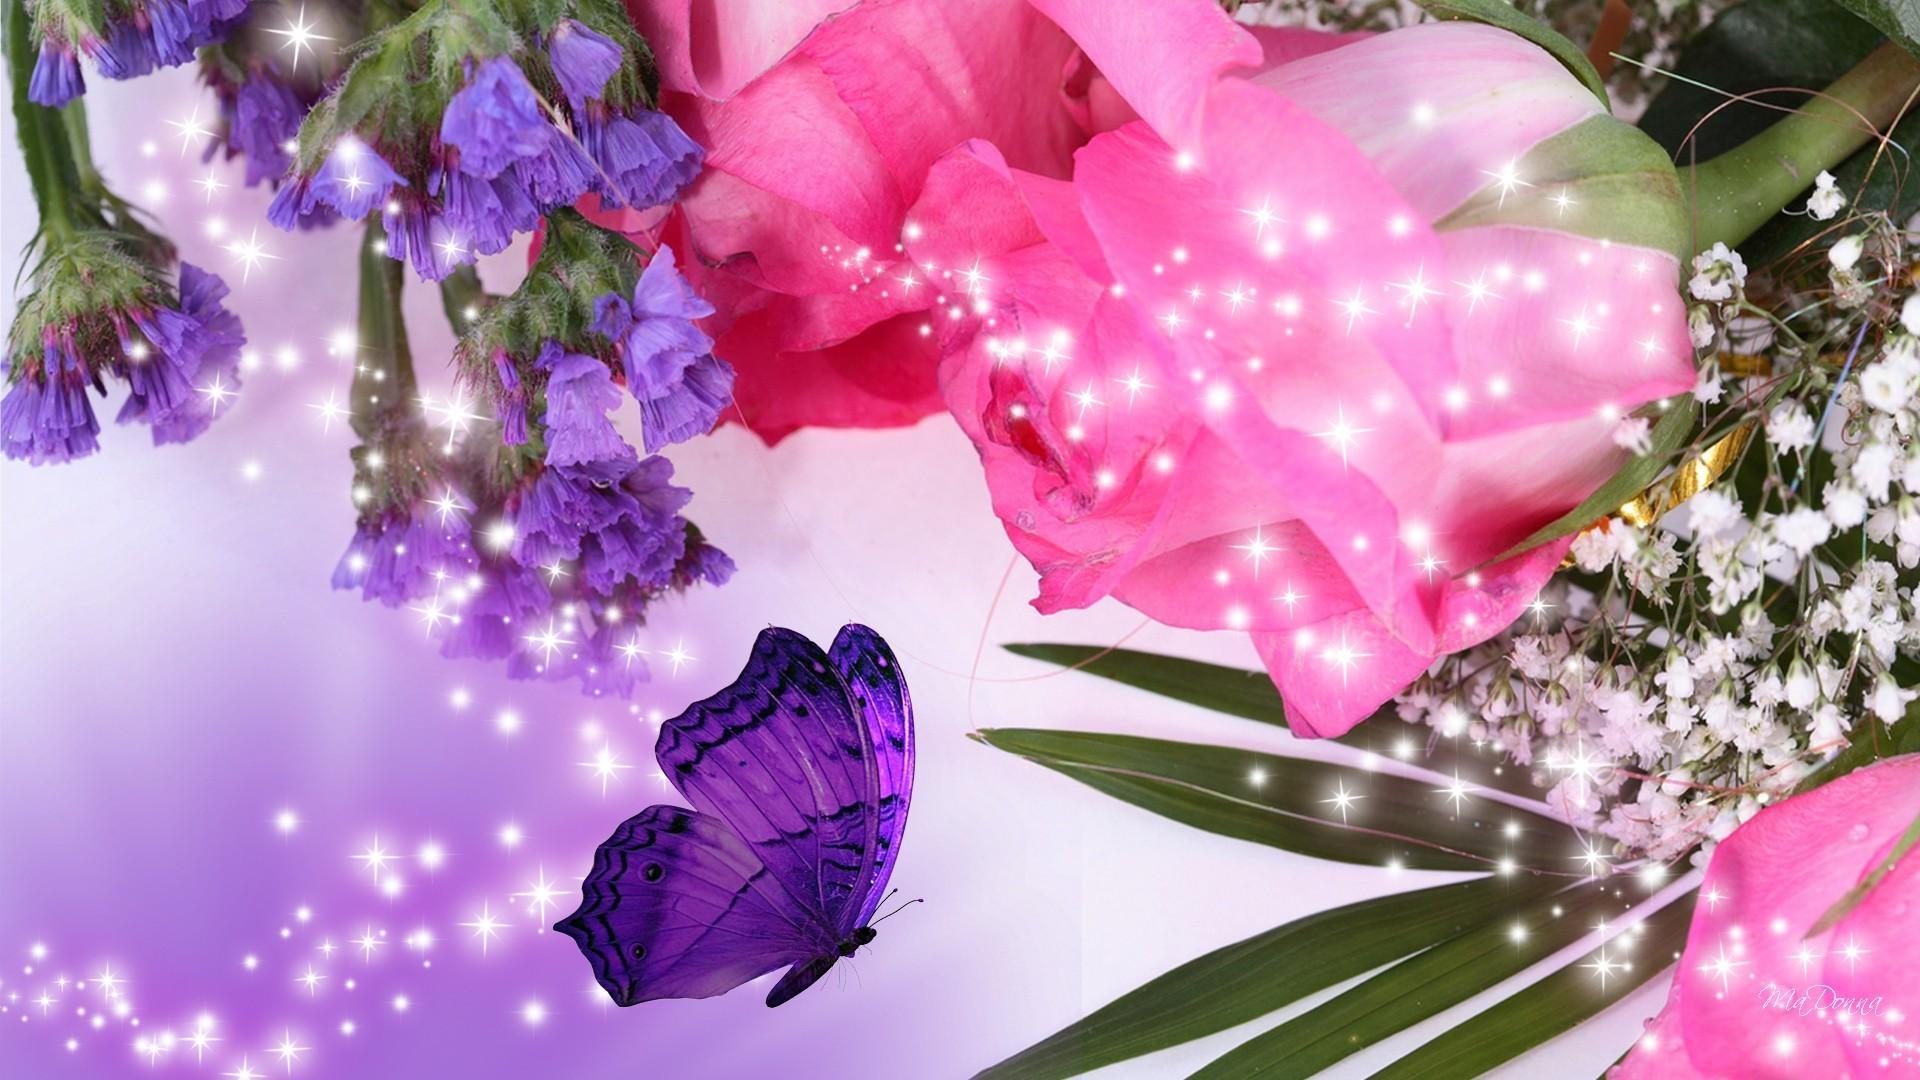 Pink Roses And Purple Flowers Wallpaper Allwallpaper 6586 Pc